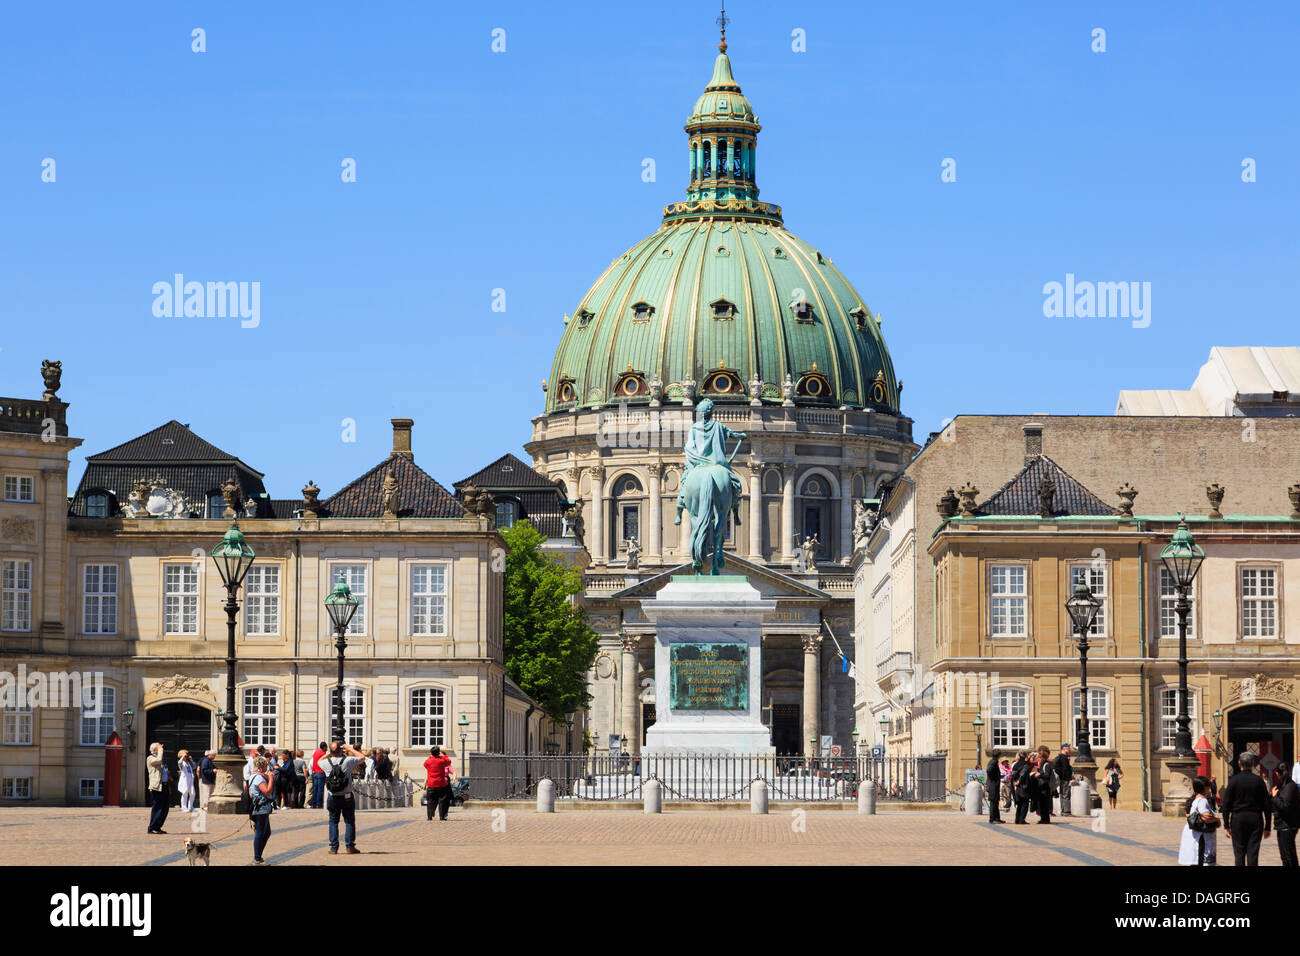 Tourists in Copenhagen's Amalienborg or Royal Palace courtyard with dome of Marble church (Frederik's Church) - Stock Image